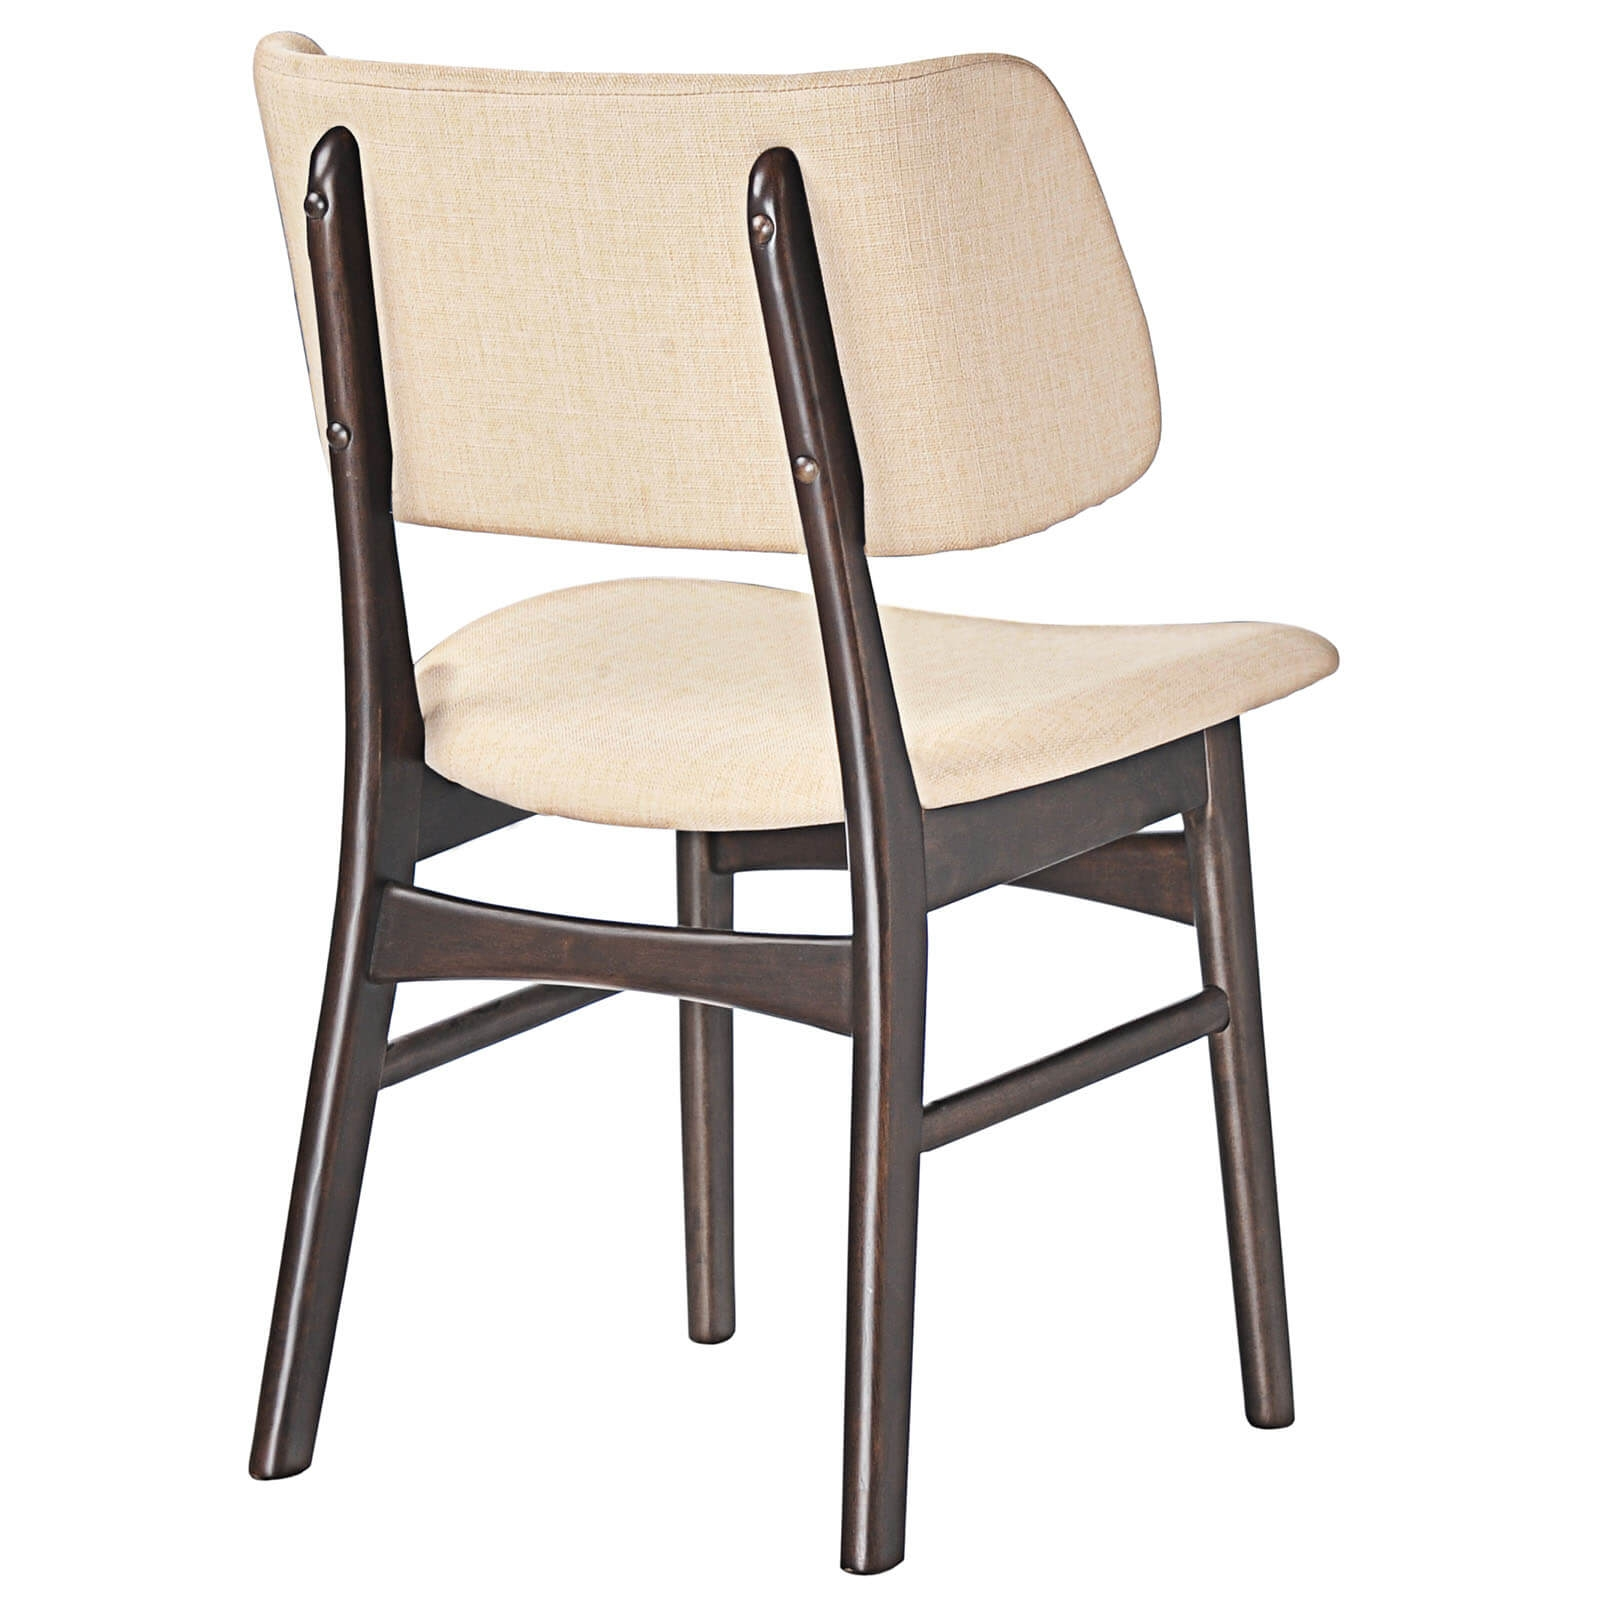 Fabric dining chair back view